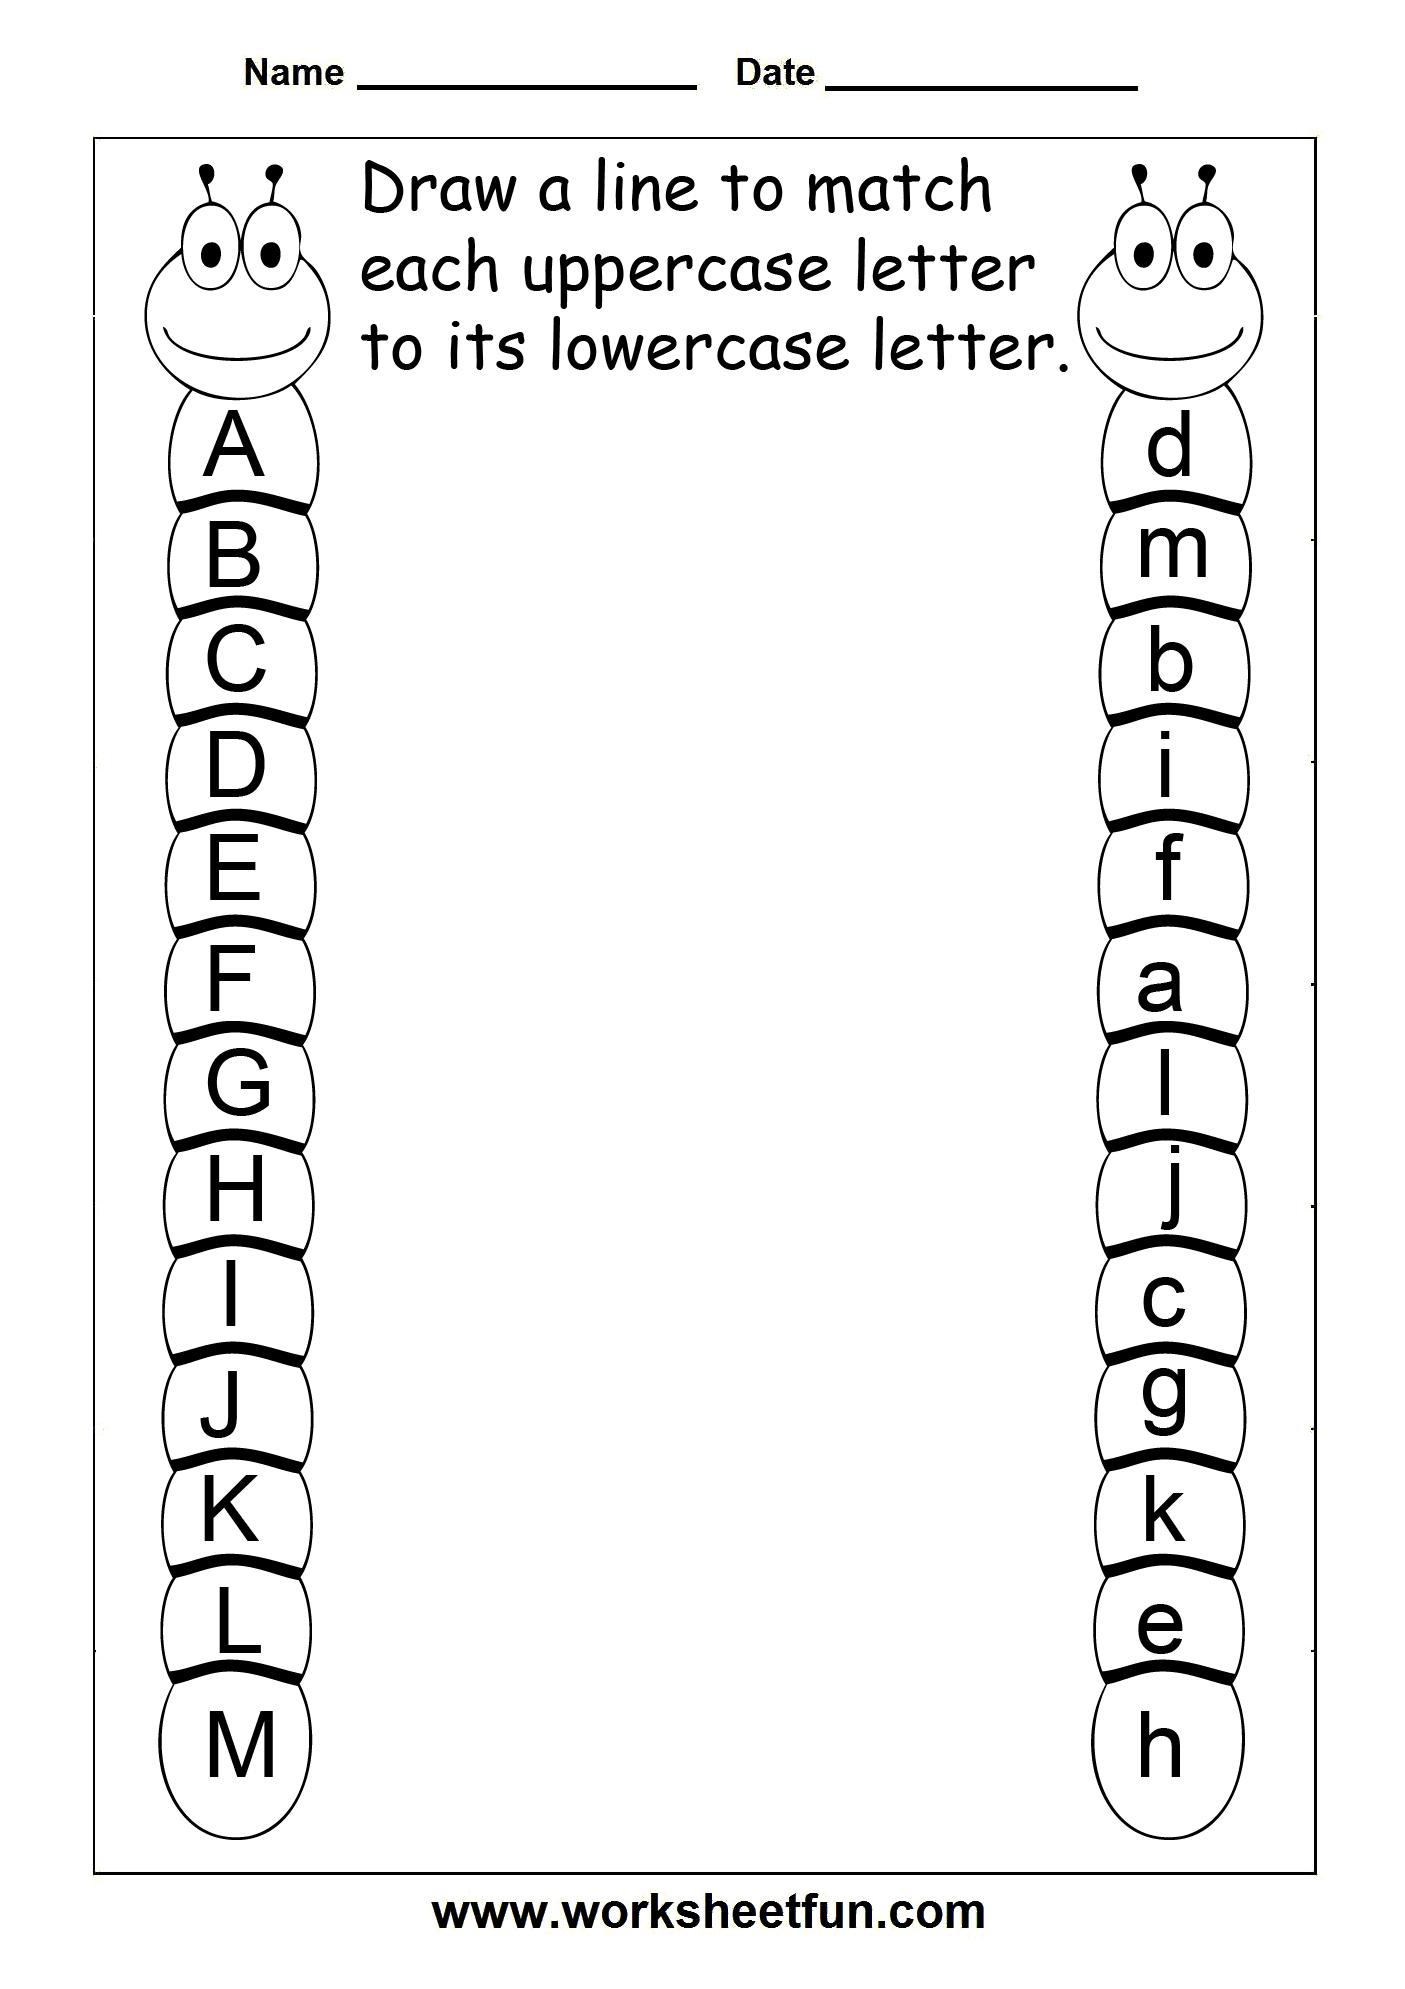 Free Worksheet Kg Worksheets 17 best images about worksheets on pinterest count kindergarten and morning work